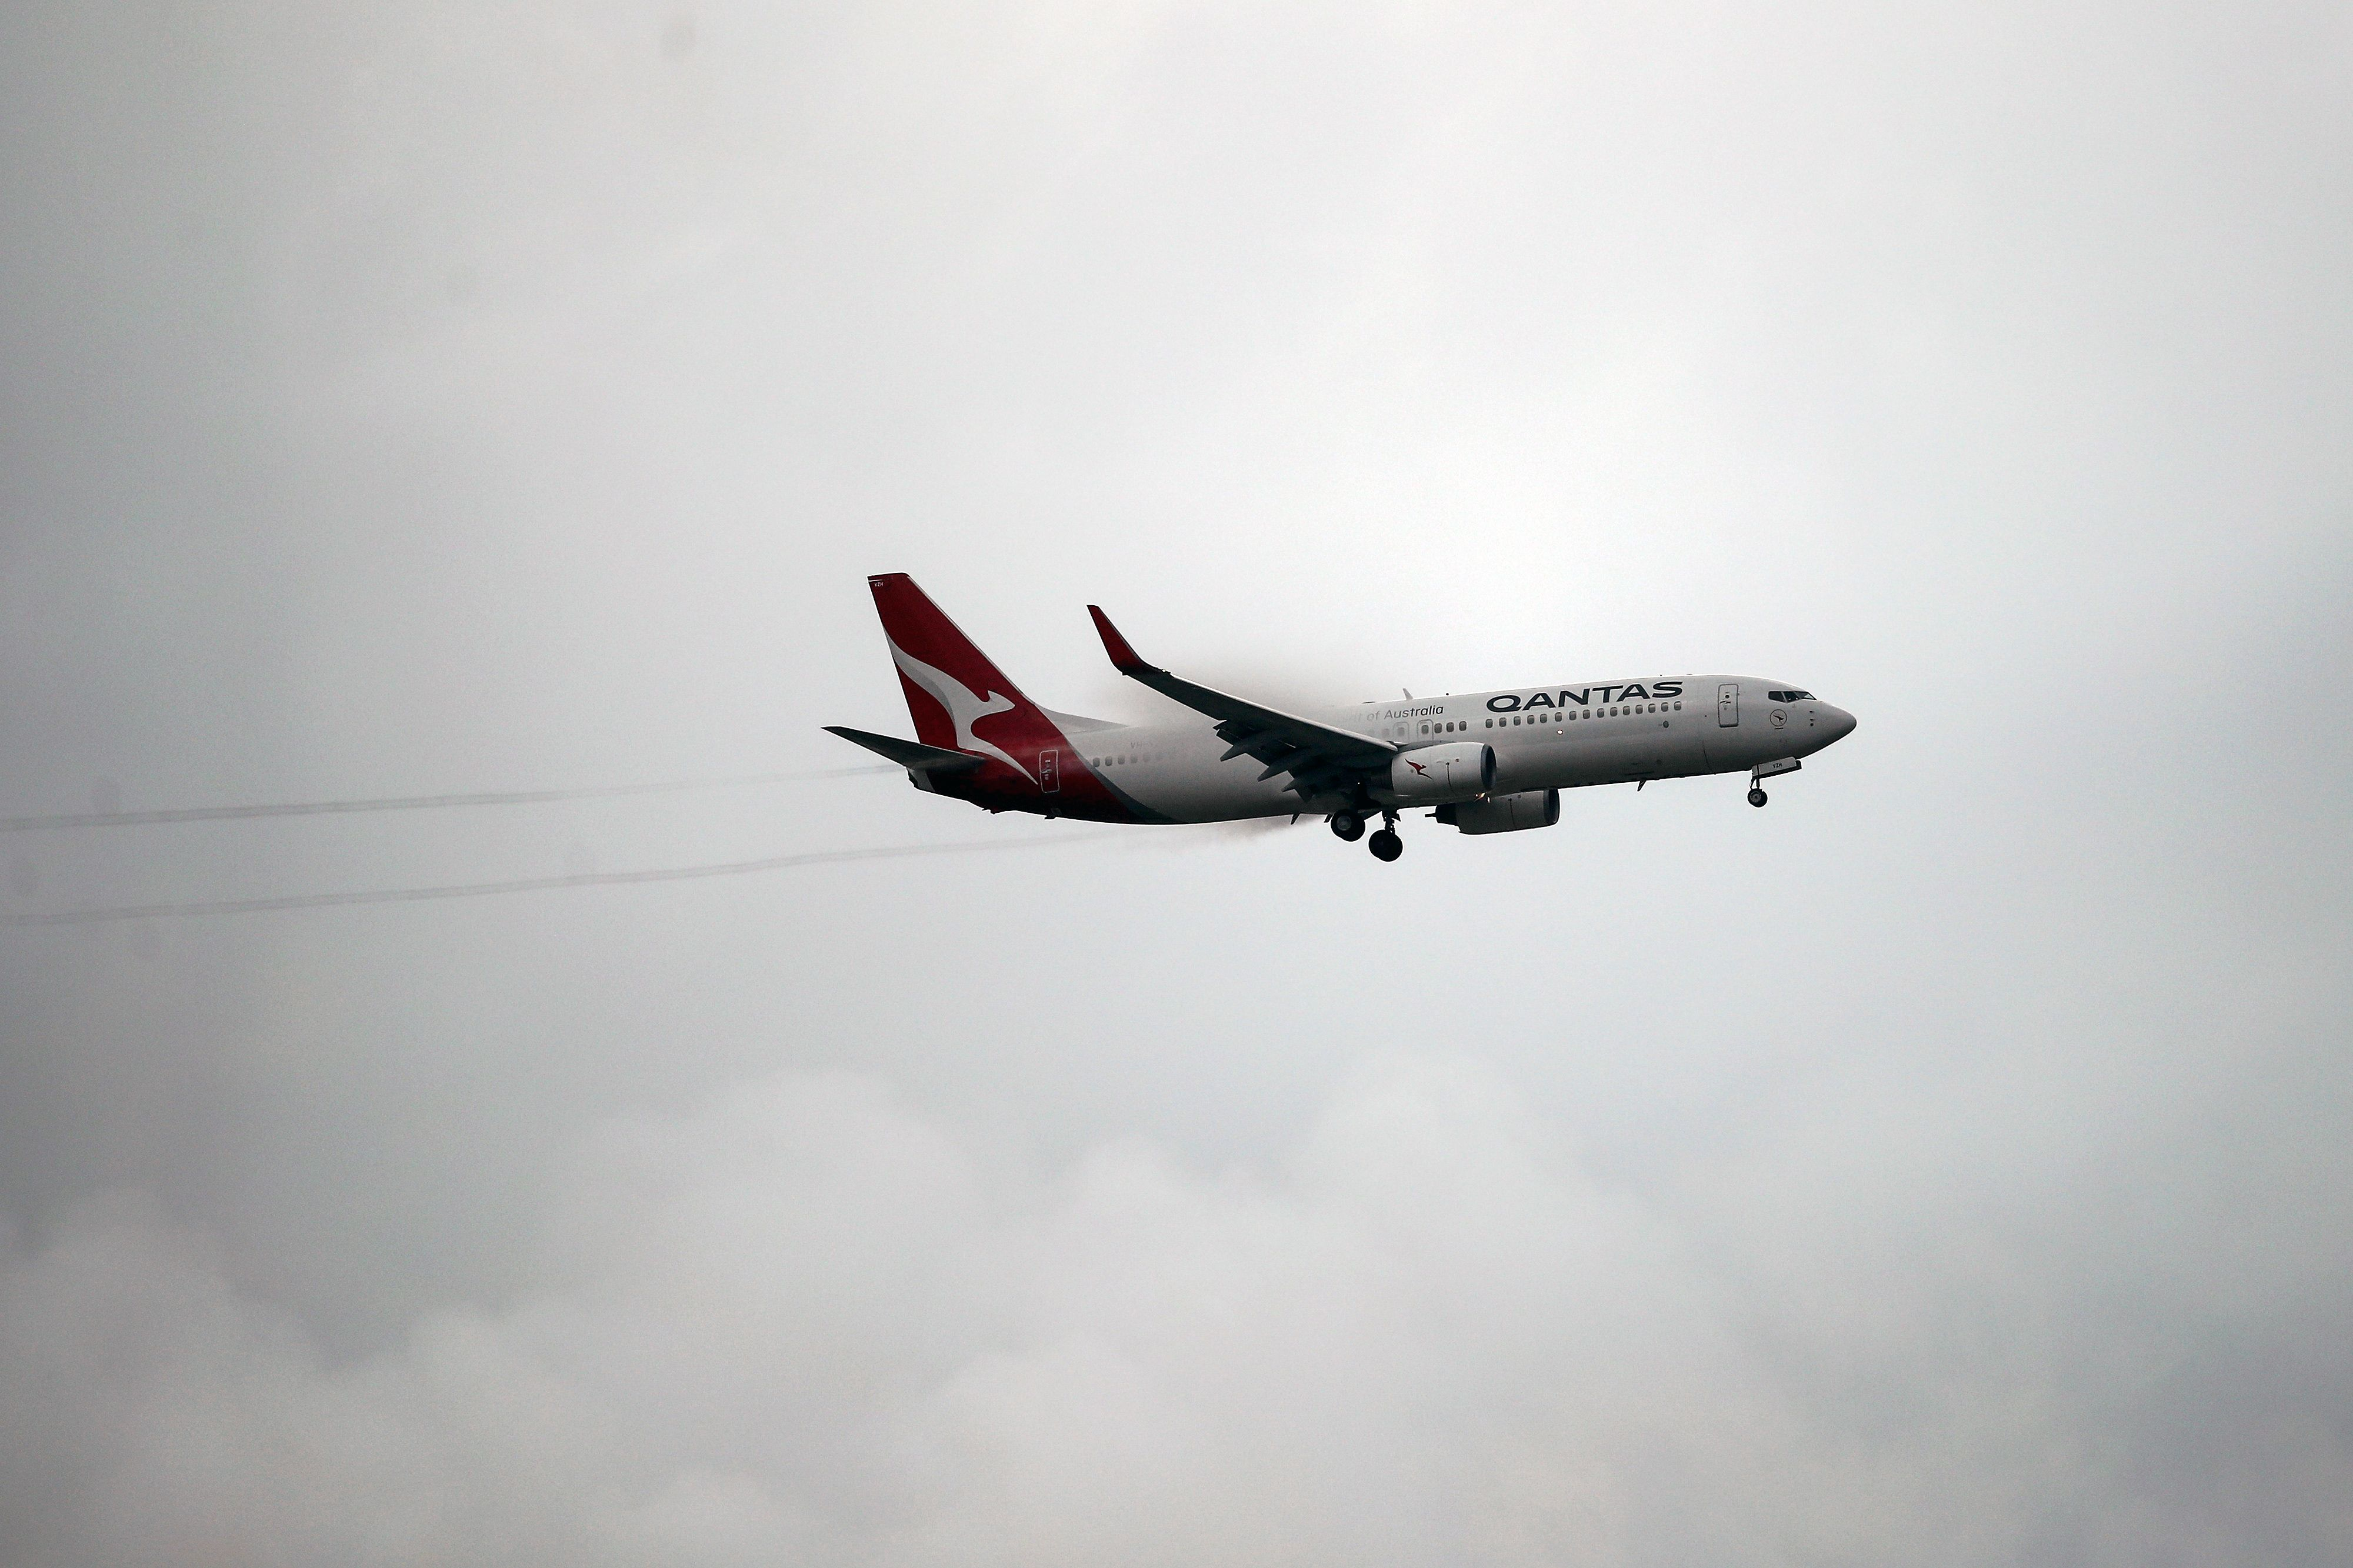 Airlines avoid parts of Iran-controlled airspace amid safety concerns